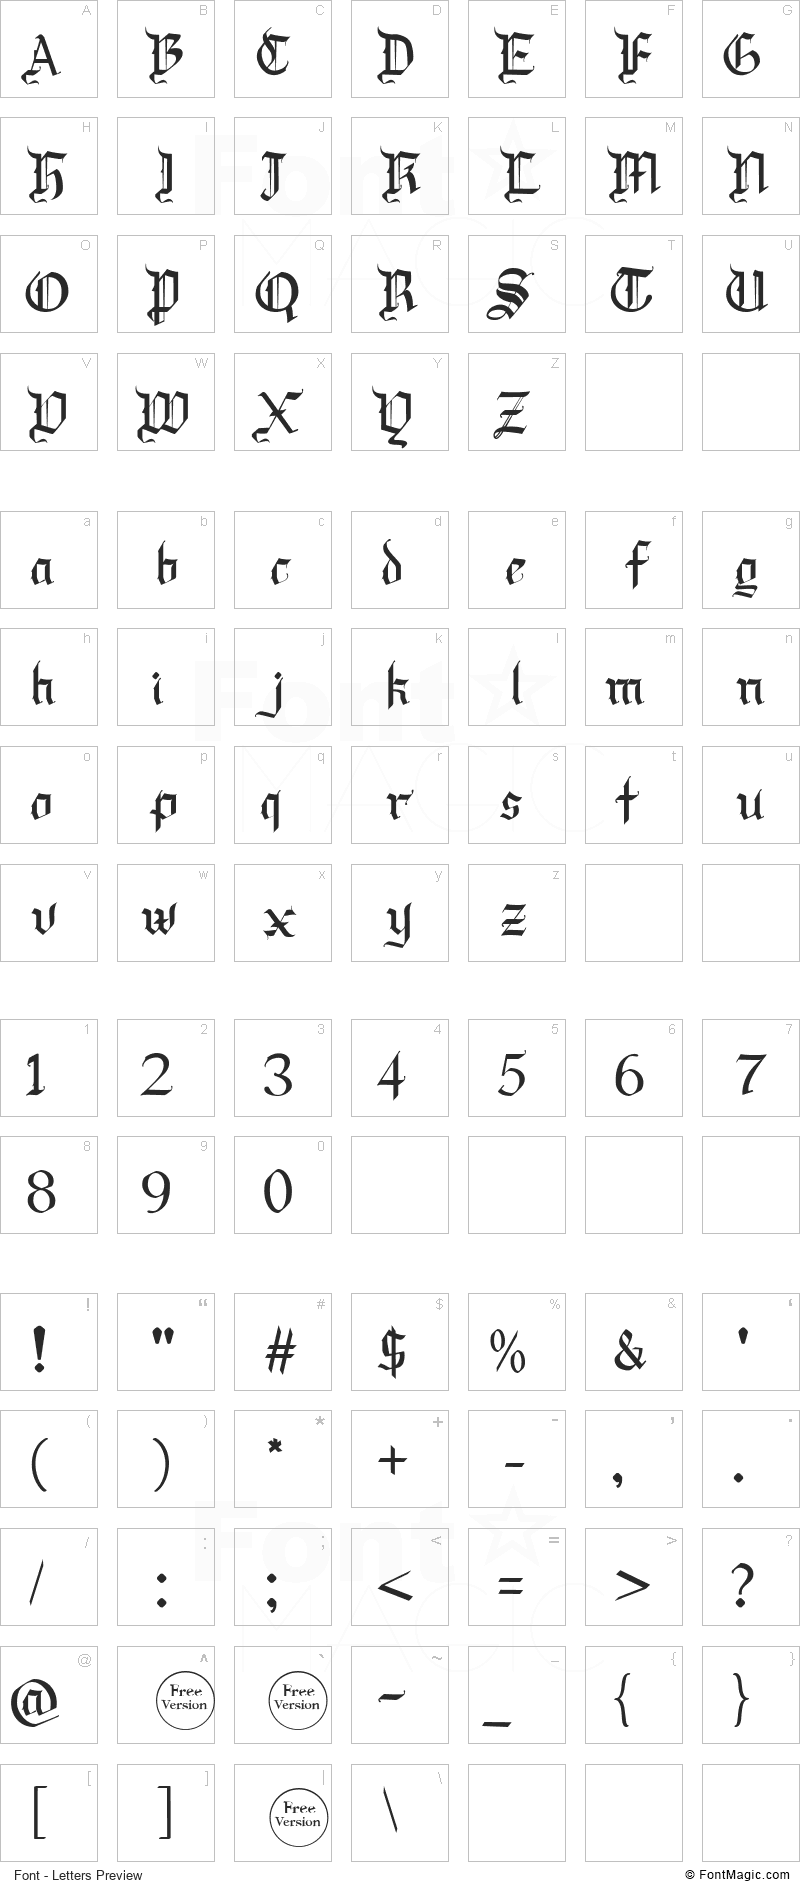 Draculie Font - All Latters Preview Chart